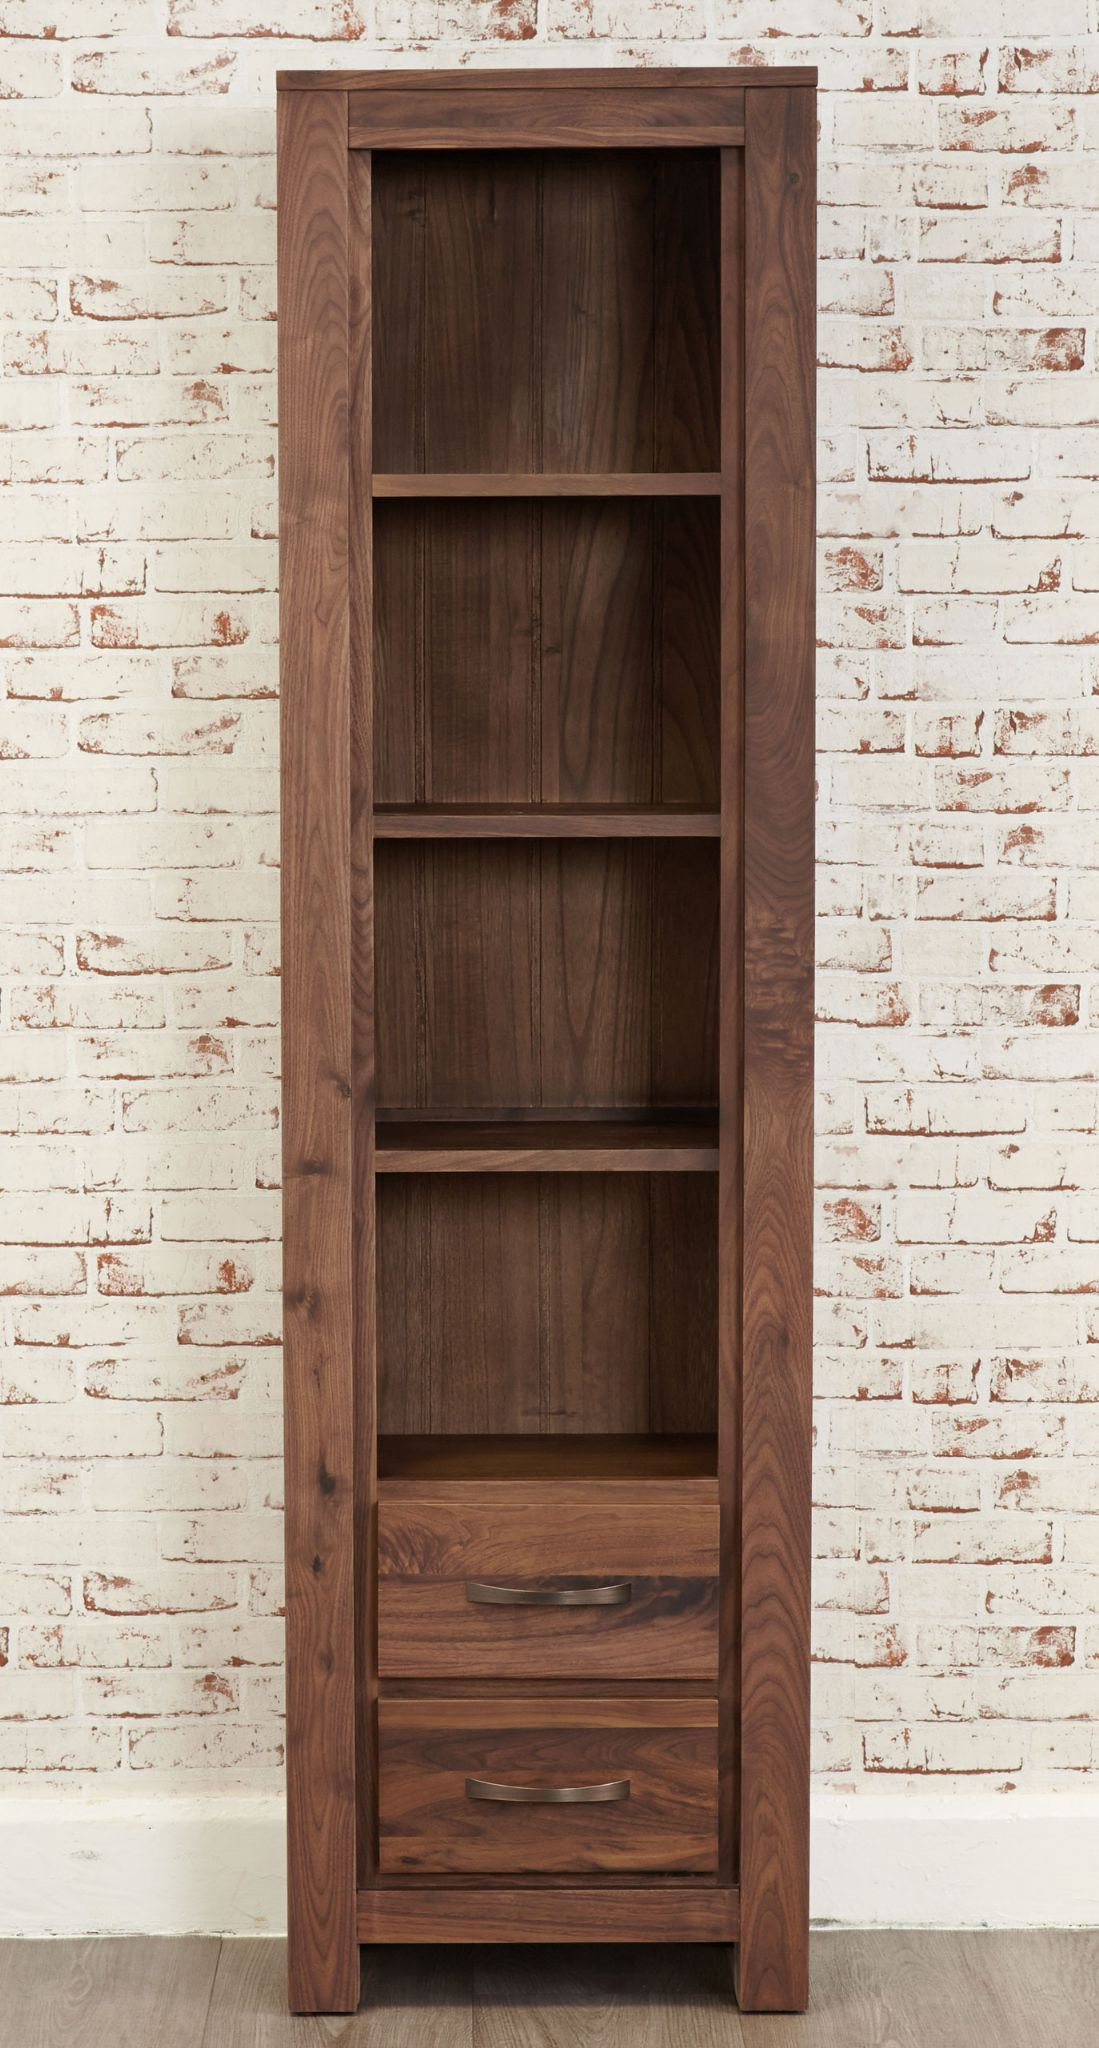 Mayan walnut tall narrow bookcase